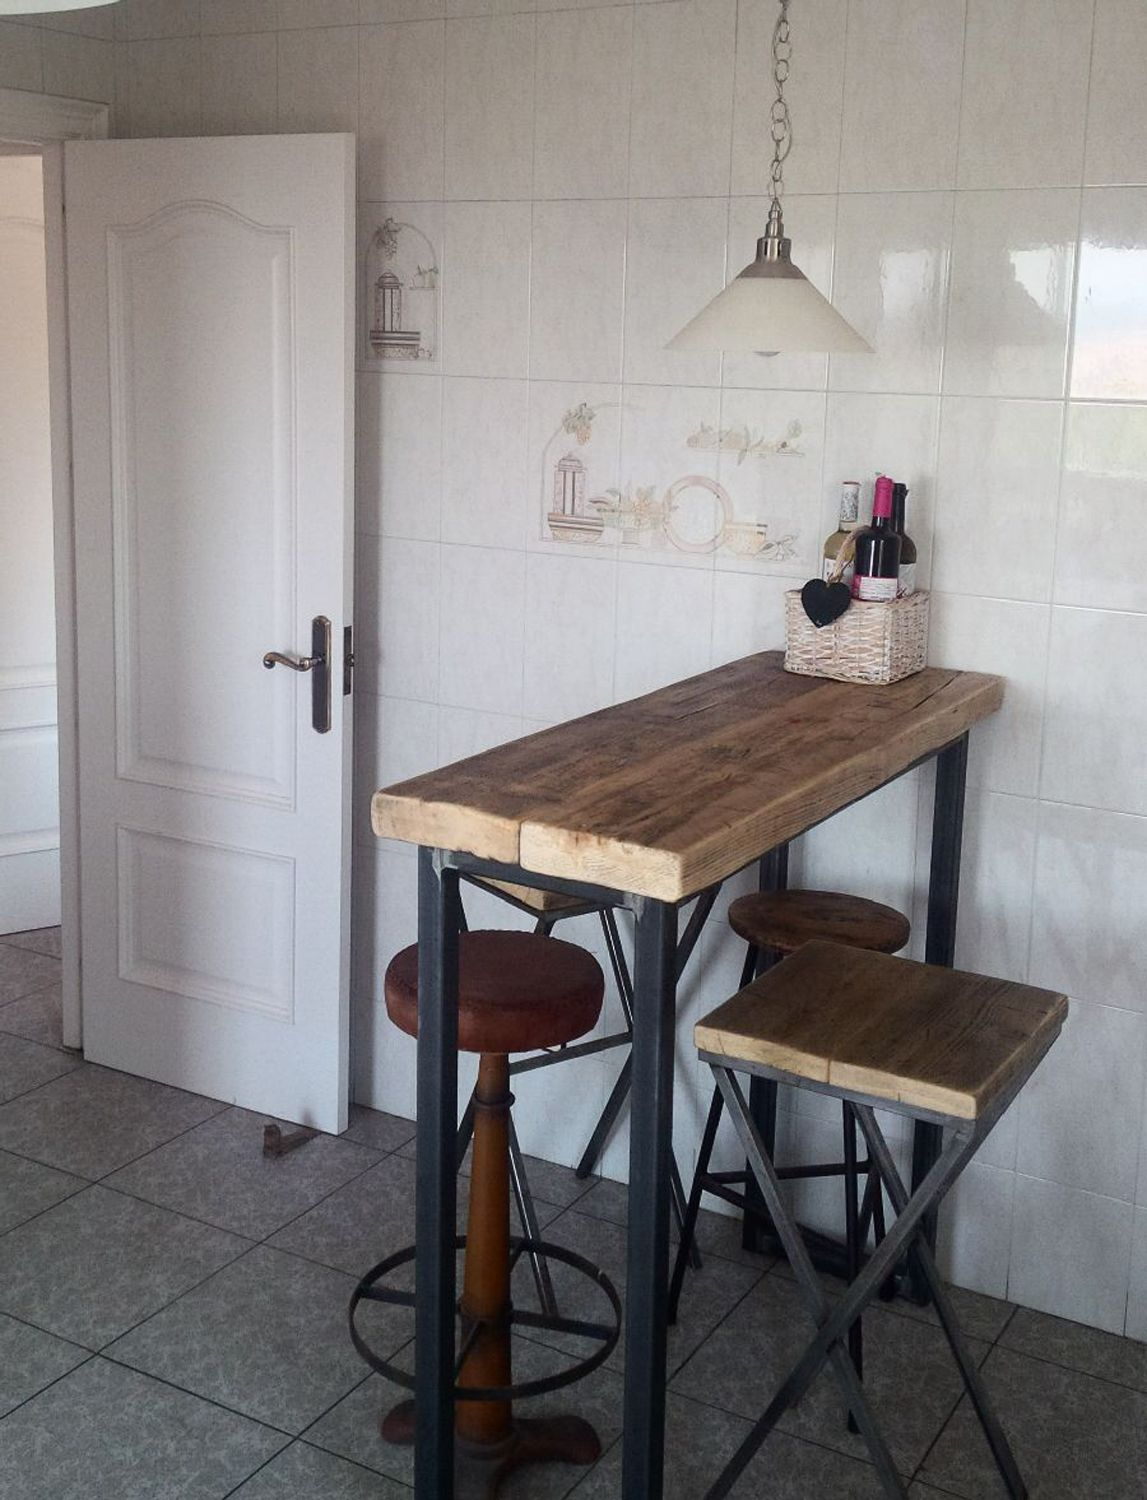 industrial mill style reclaimed wood breakfast bar + two stools